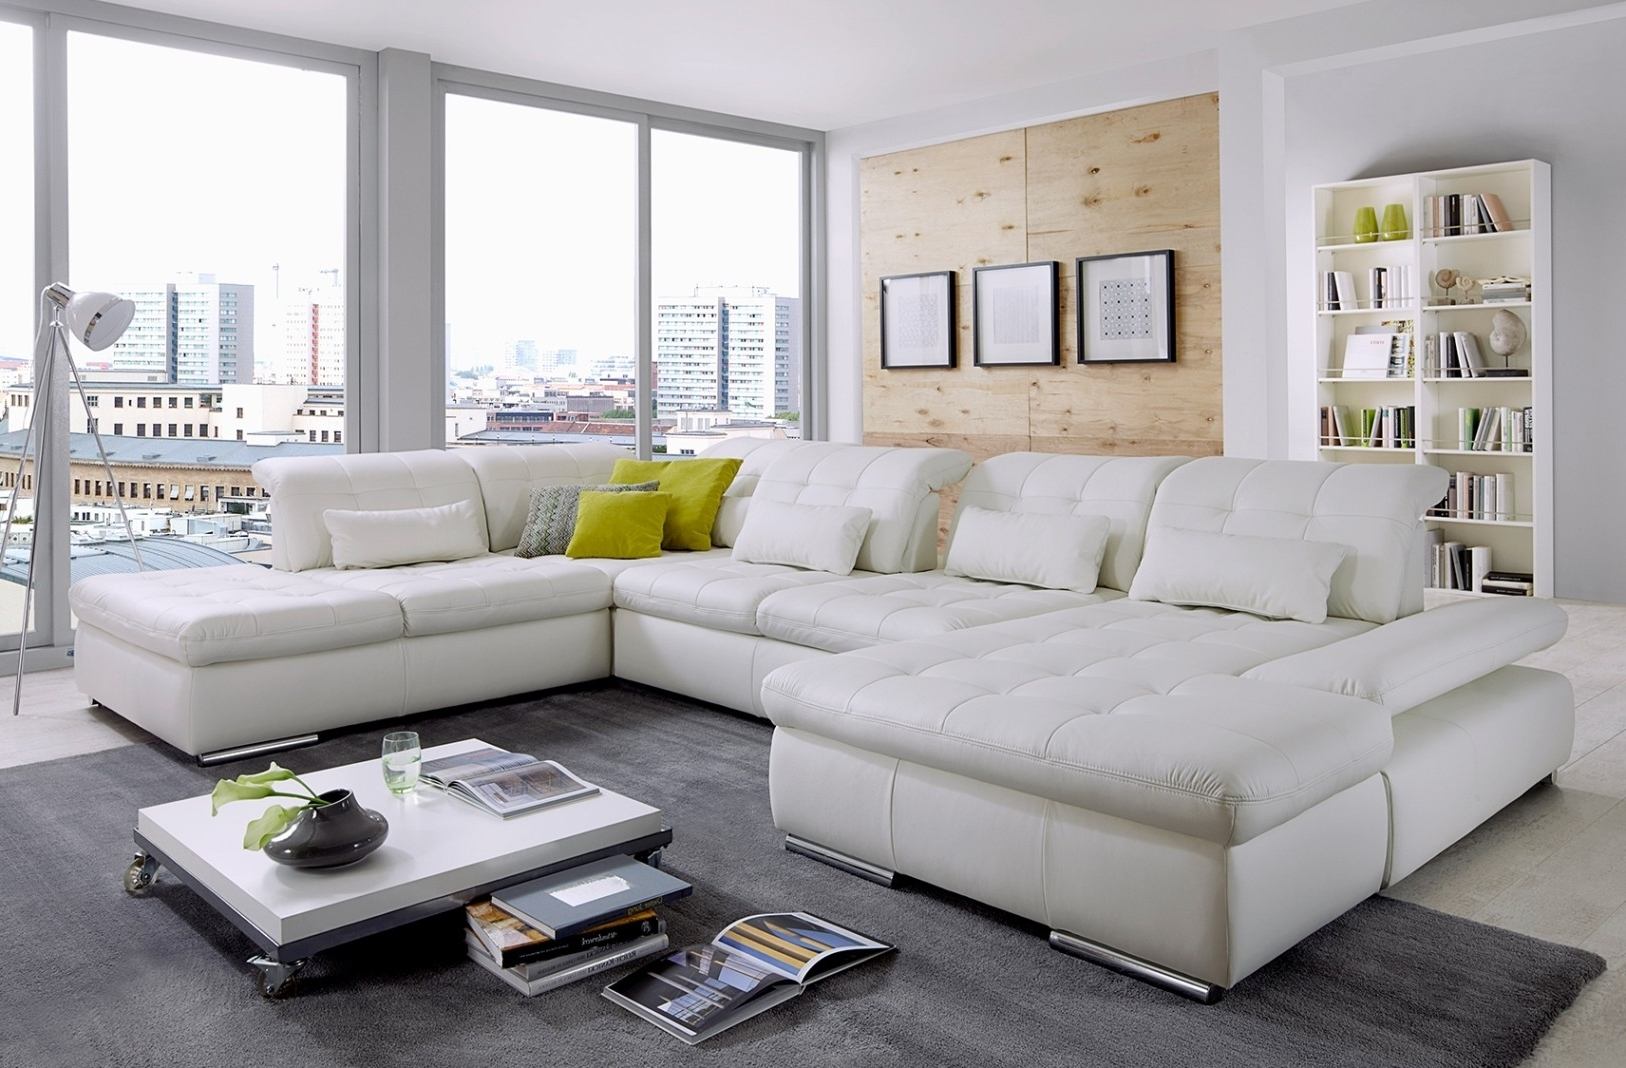 Philadelphia Sectional Sofas Pertaining To Fashionable Alpine Sectional Sofa In Punch White Leather (View 6 of 15)